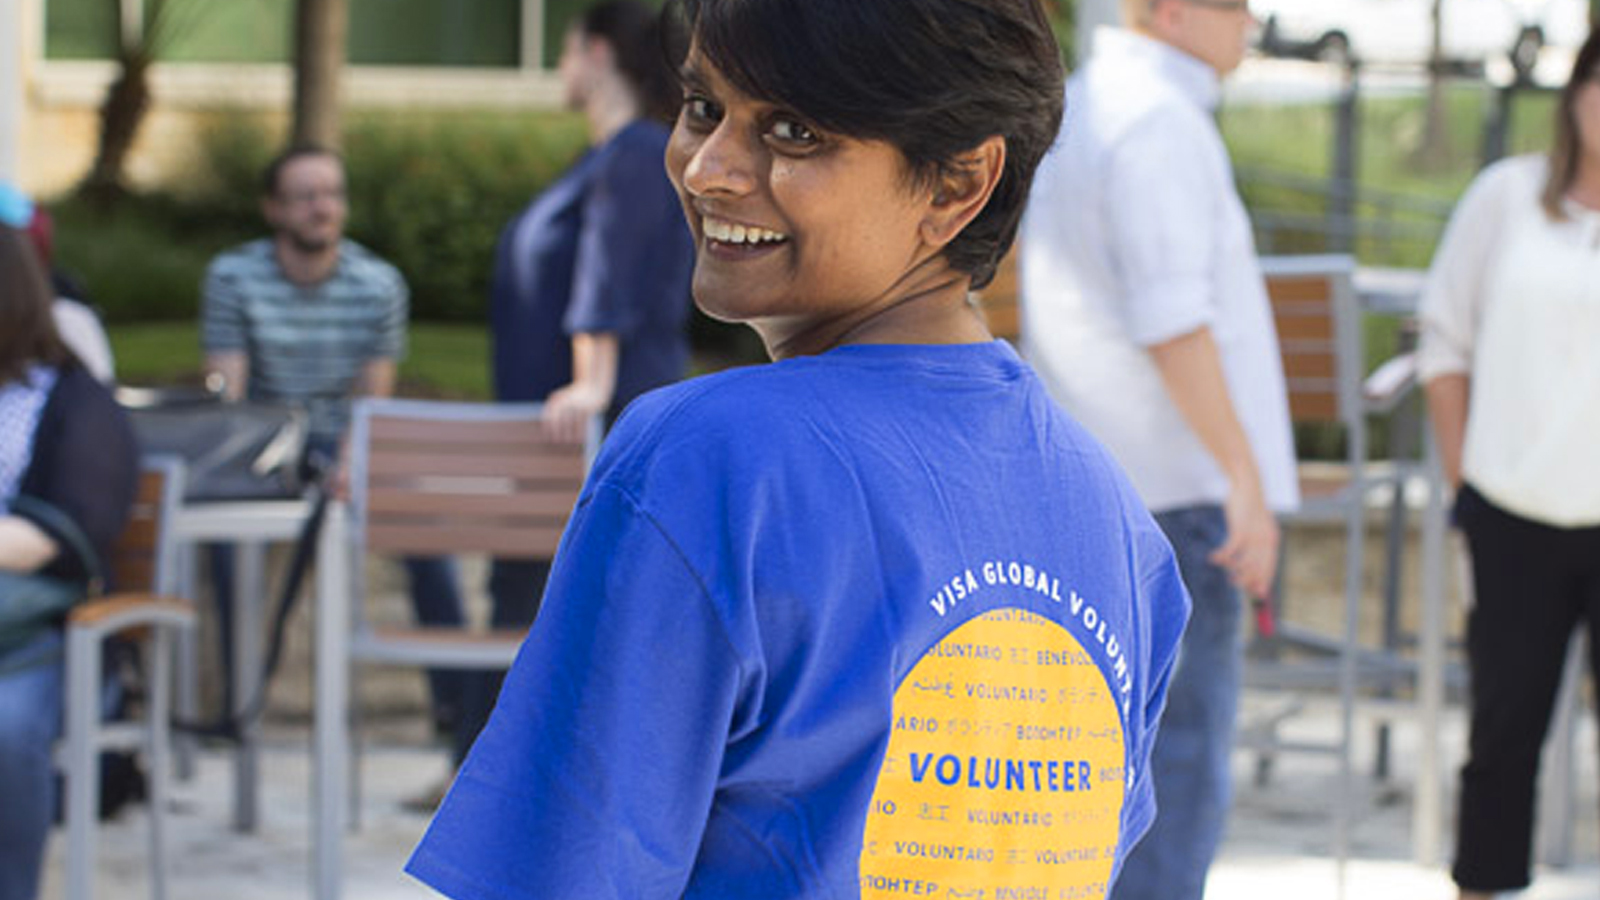 Visa volunteer